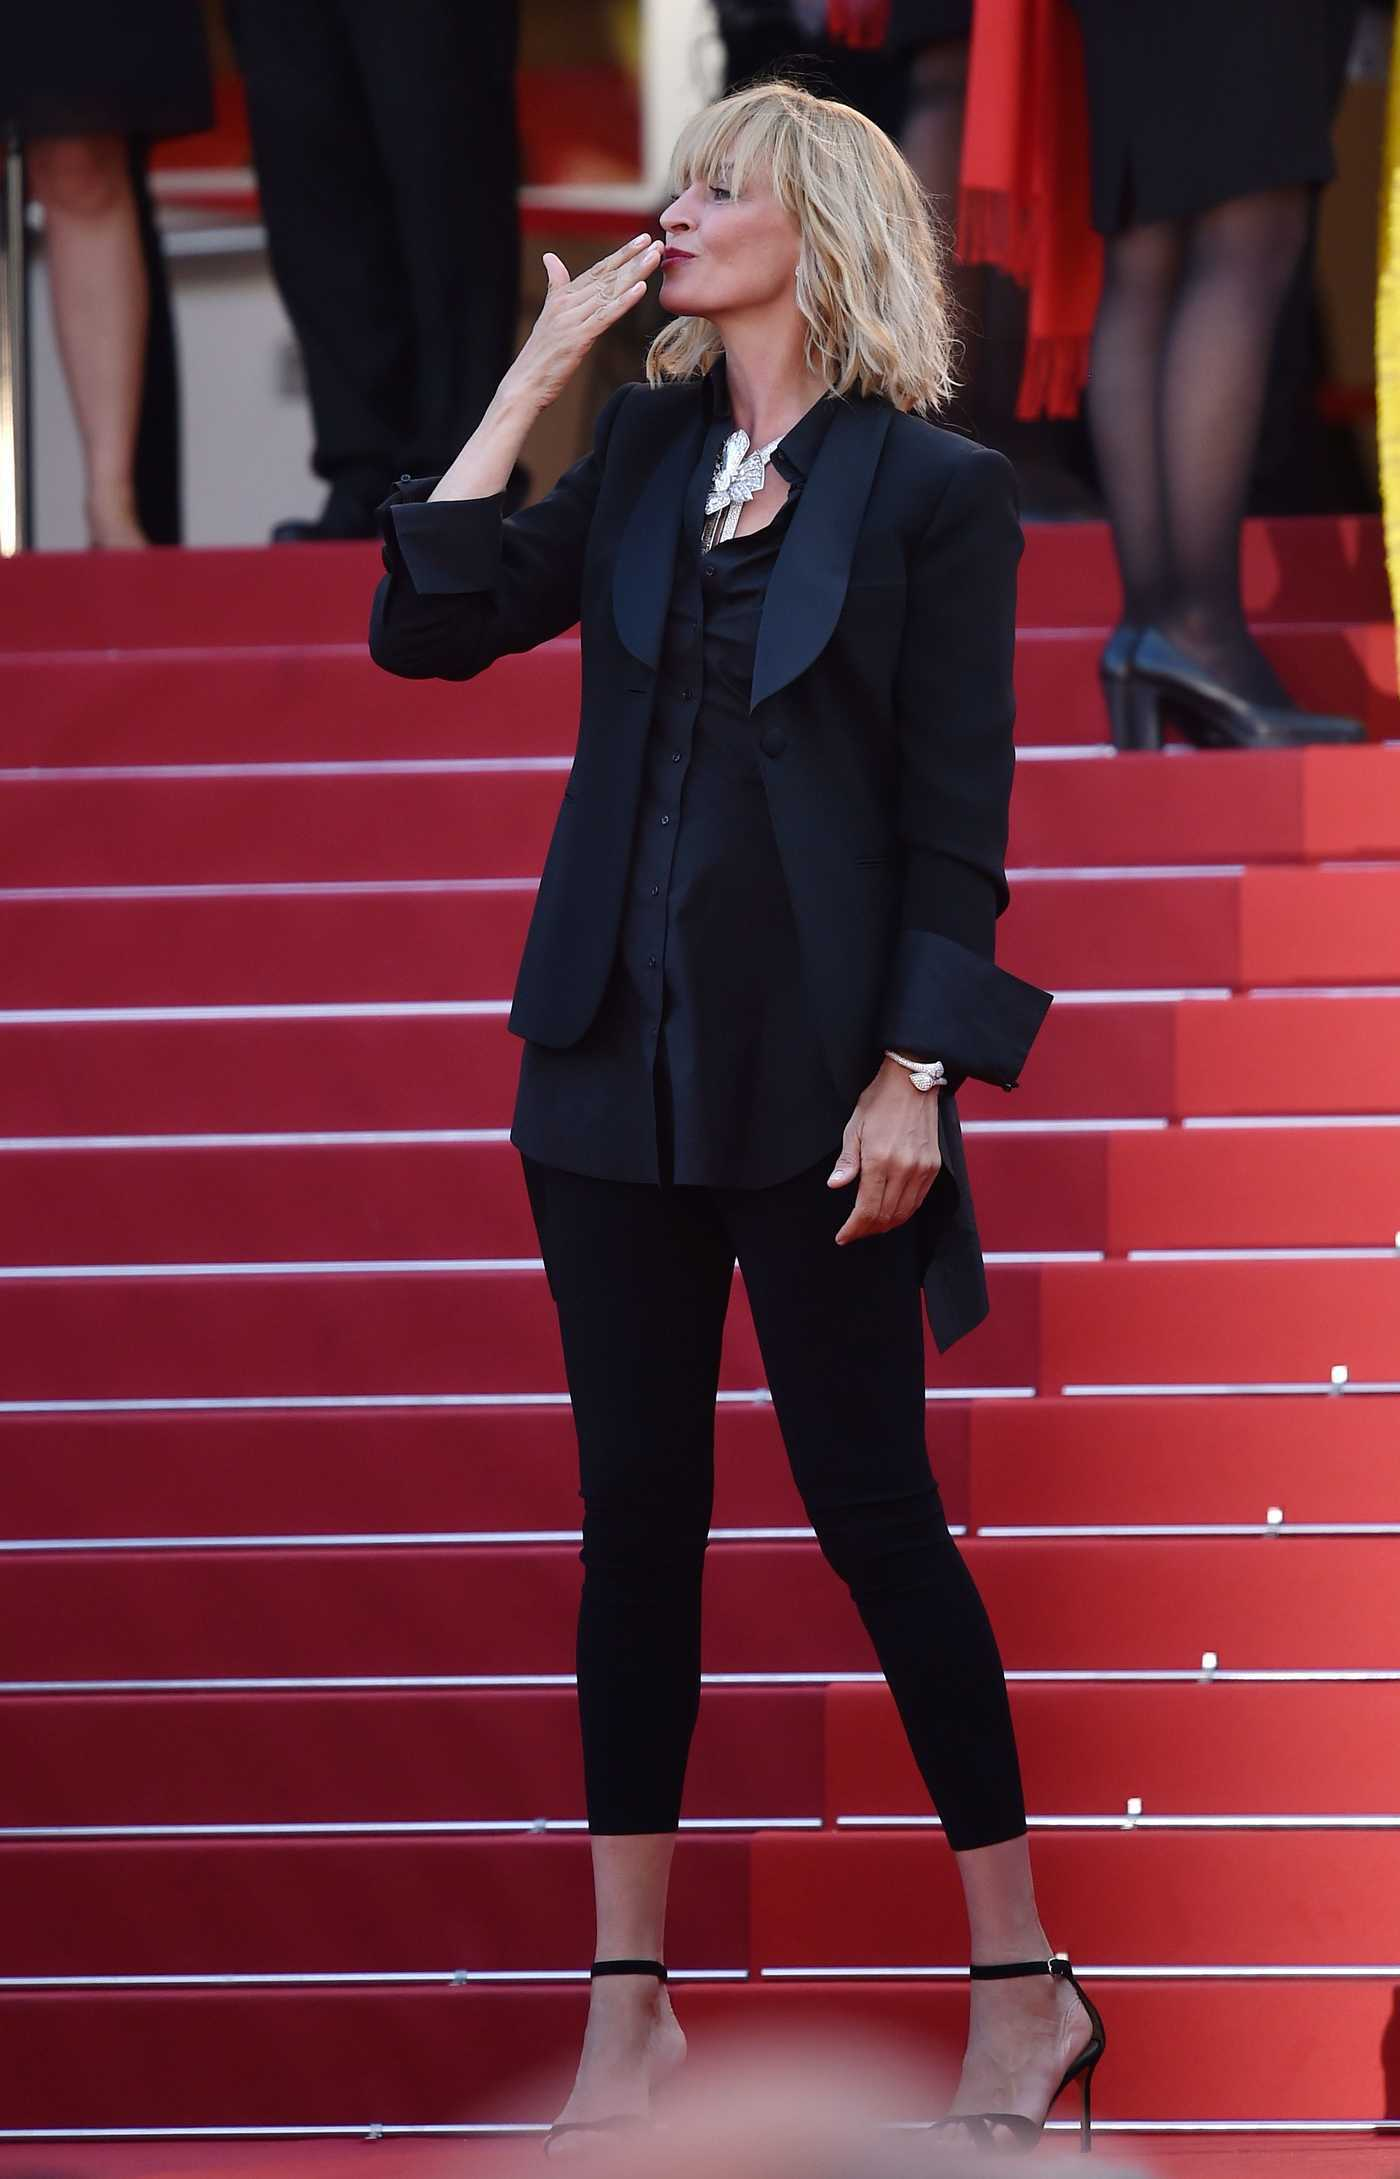 Uma Thurman at the Based on a True Story Premiere During the 70th Annual Cannes Film Festival 05/27/2017